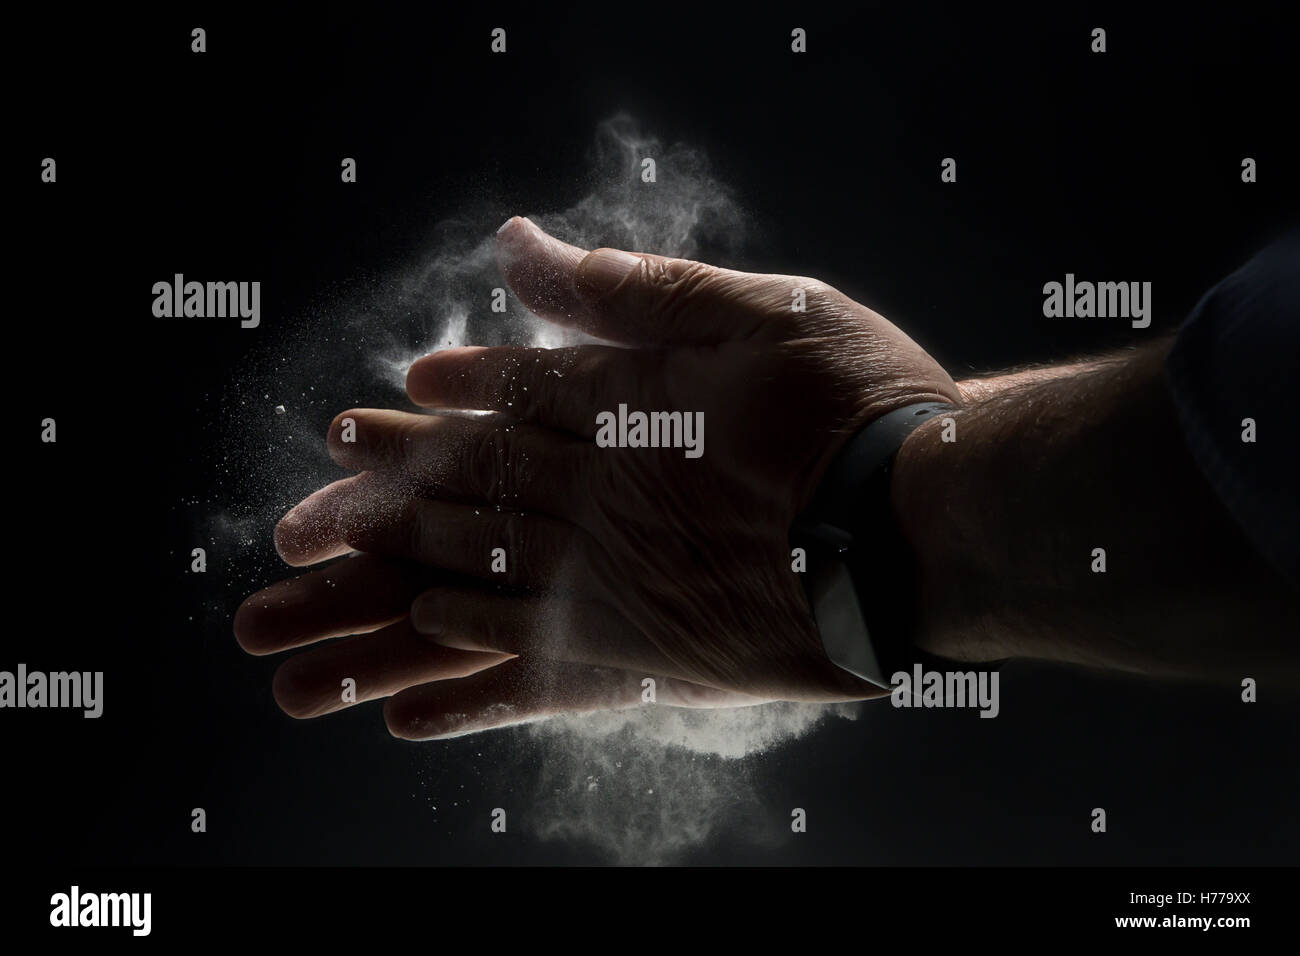 Close-up of hands  with  talcum powder - Stock Image